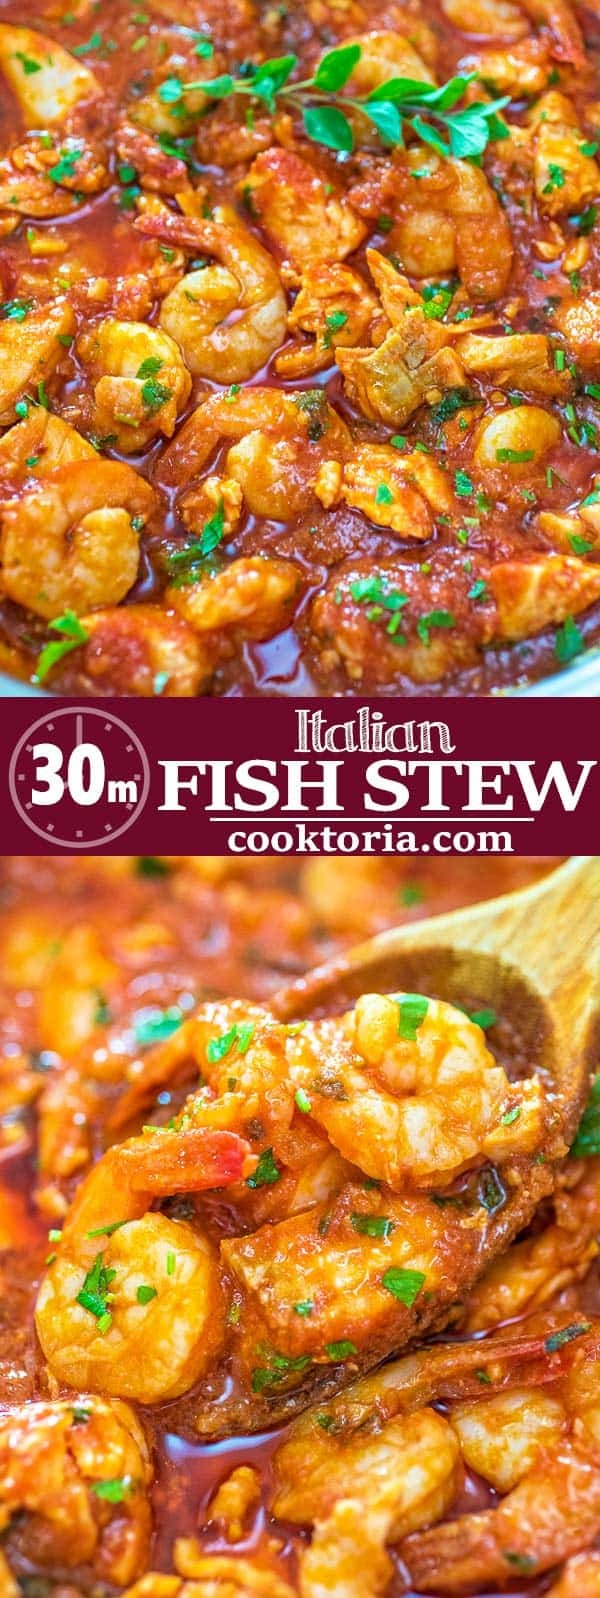 Salmon fillets and shrimp cooked in a tomato sauce with onions, garlic, and fresh herbs. This Italian Fish Stew makes an easy and scrumptious dinner, and comes together in less than 30 minutes.  ❤ COOKTORIA.COM #fish #seafood #salmon #shrimp #Italian